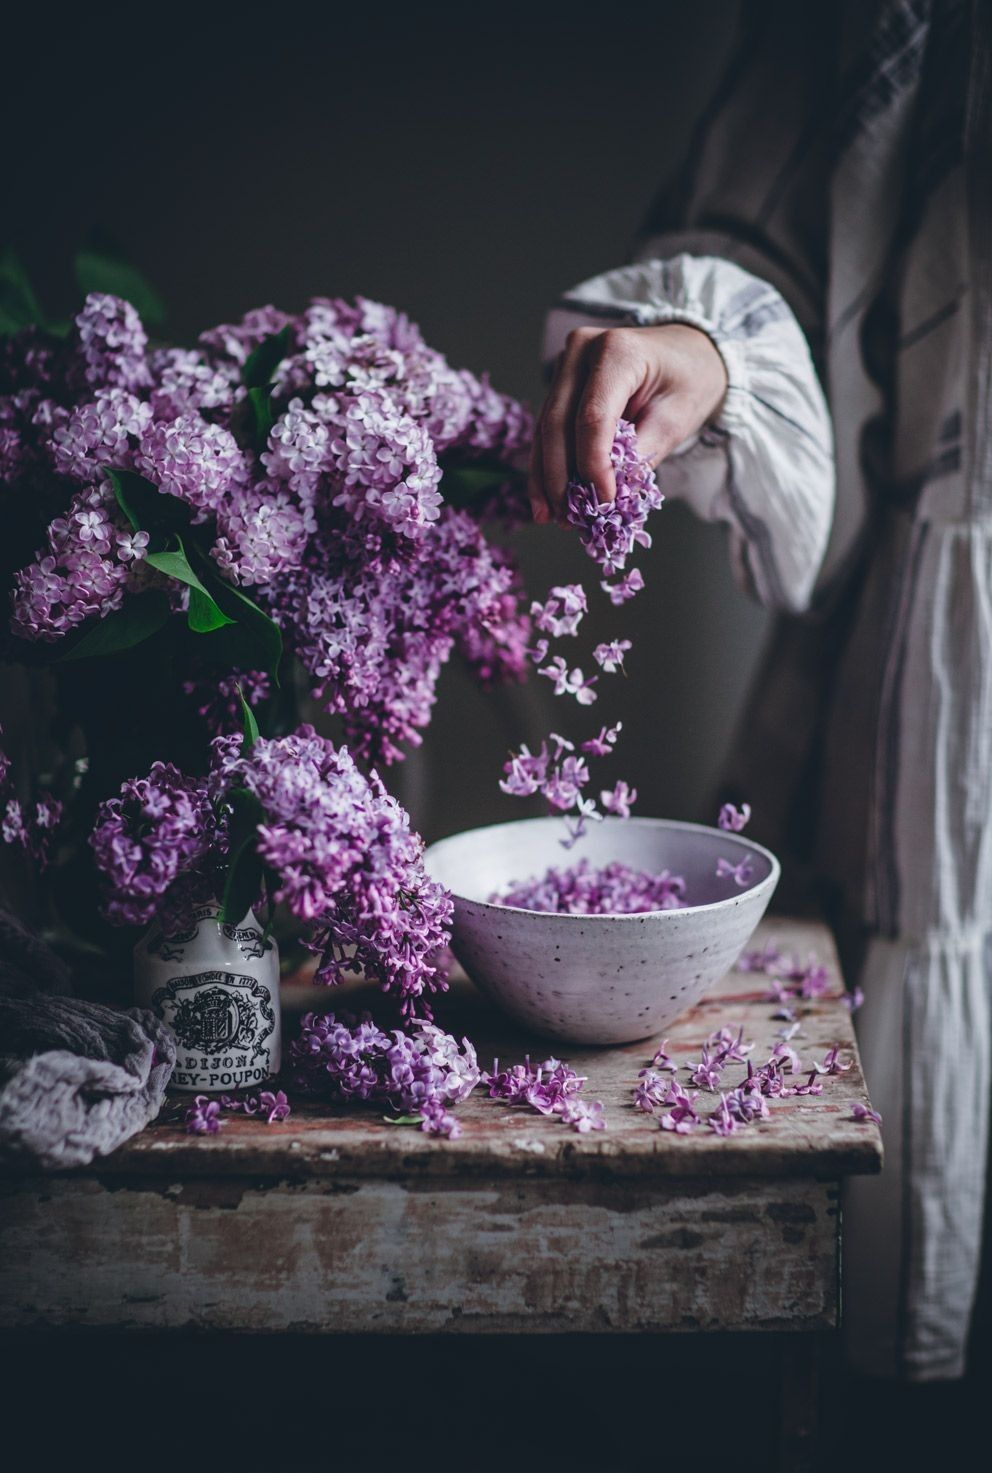 Pin By صورة و كلمة On Yeah I Love Flowers Lilac Flowers Instagram Floral Photography